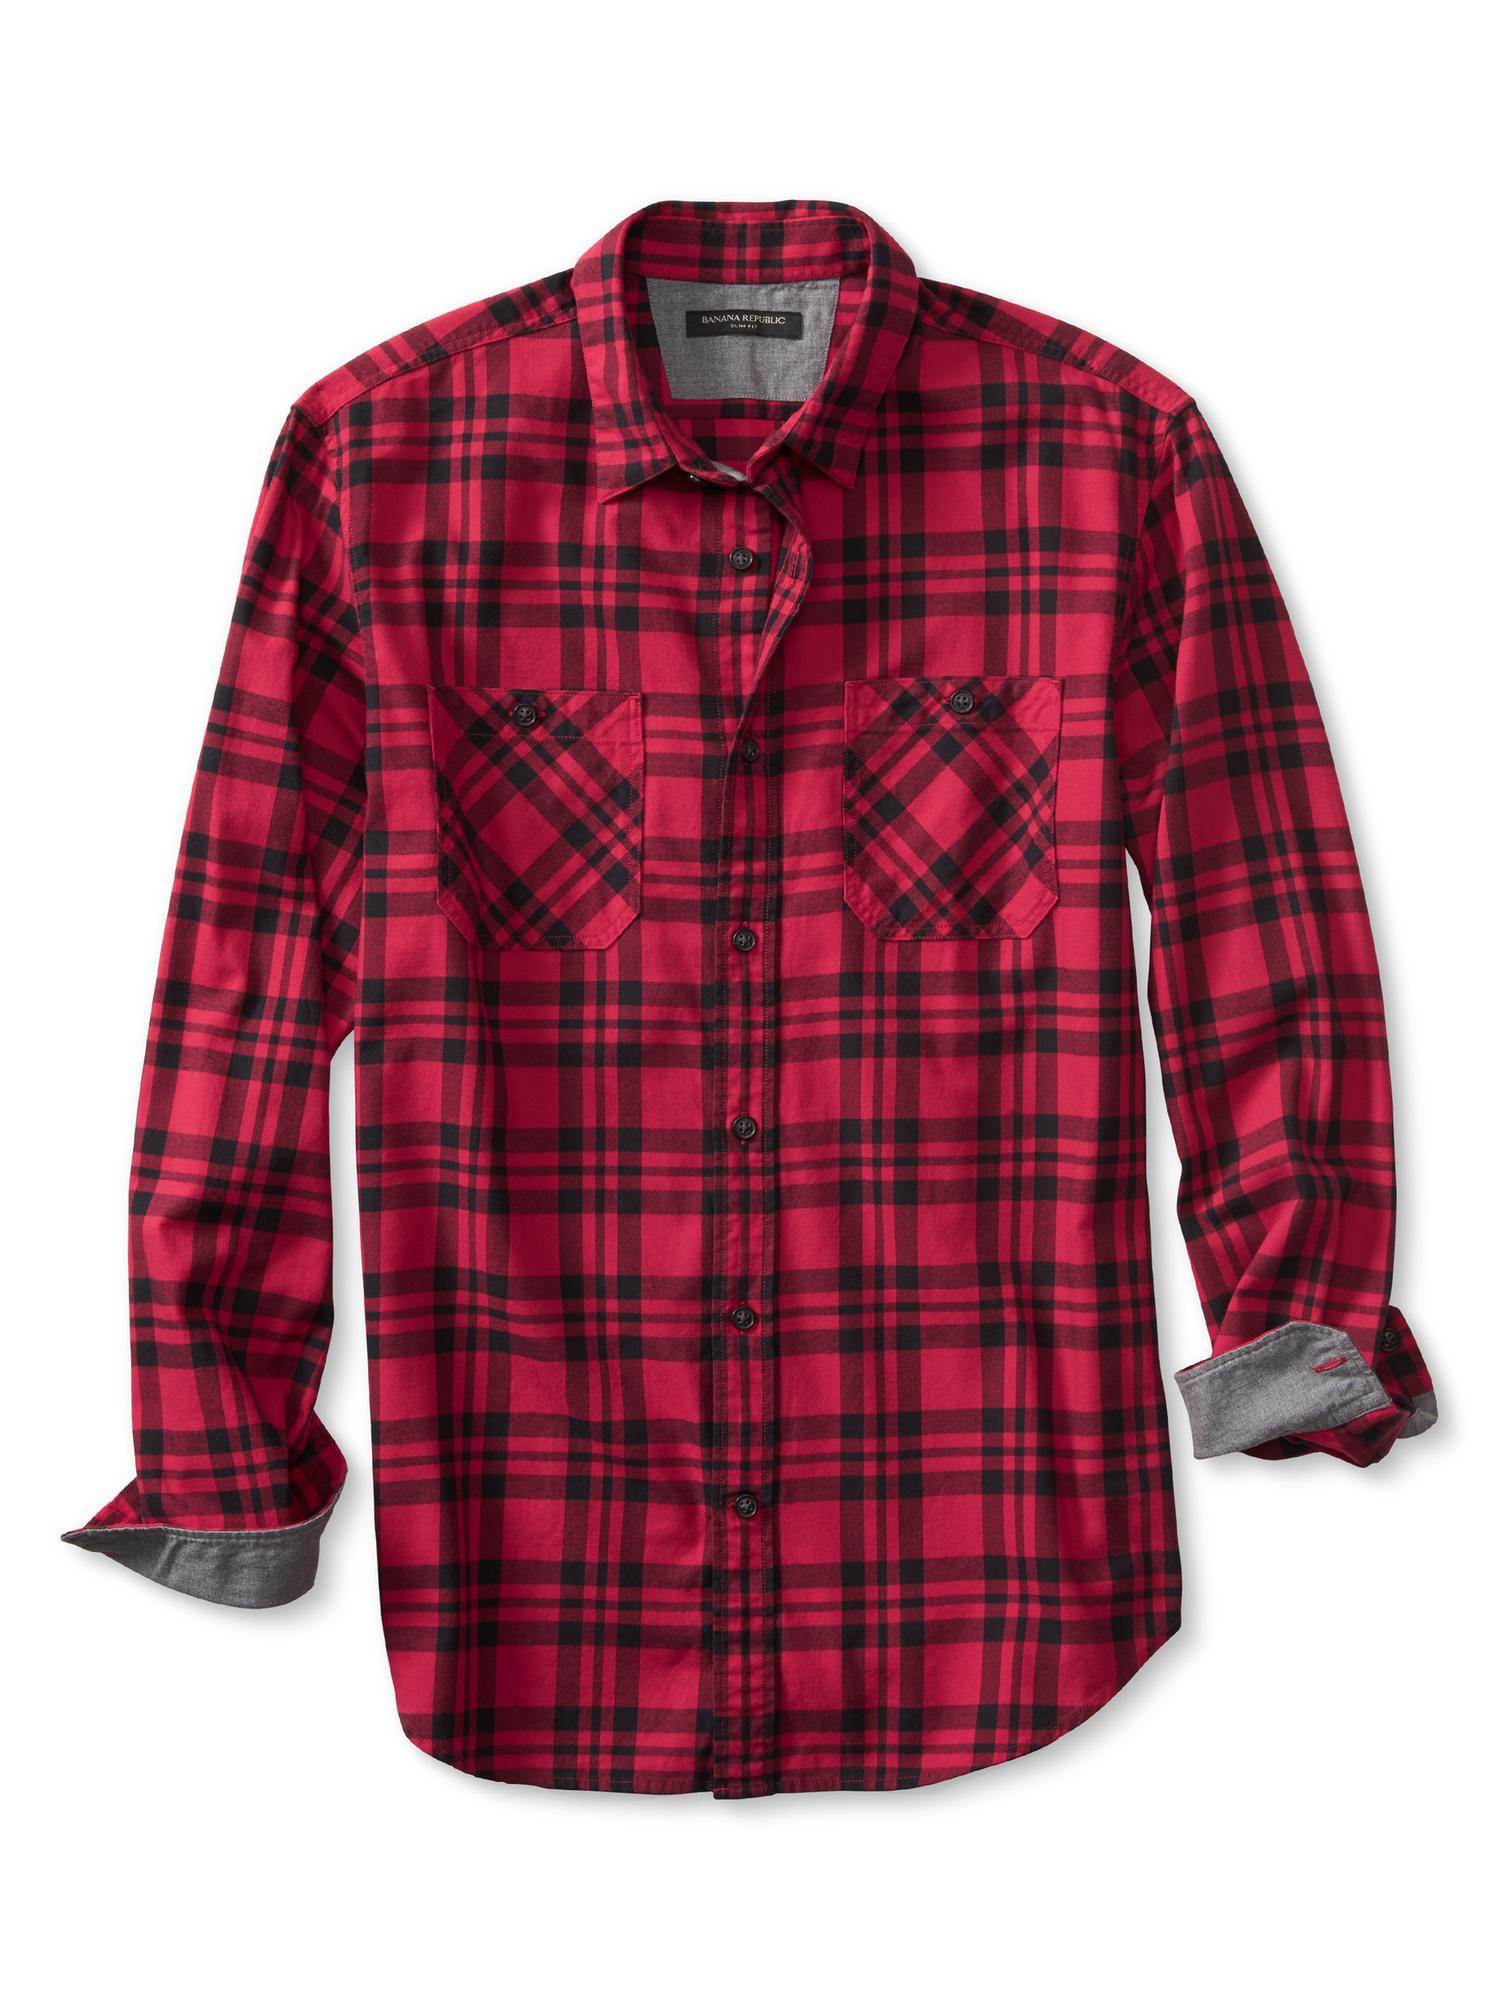 Banana republic slim fit red check flannel shirt in red for Mens slim fit flannel shirt